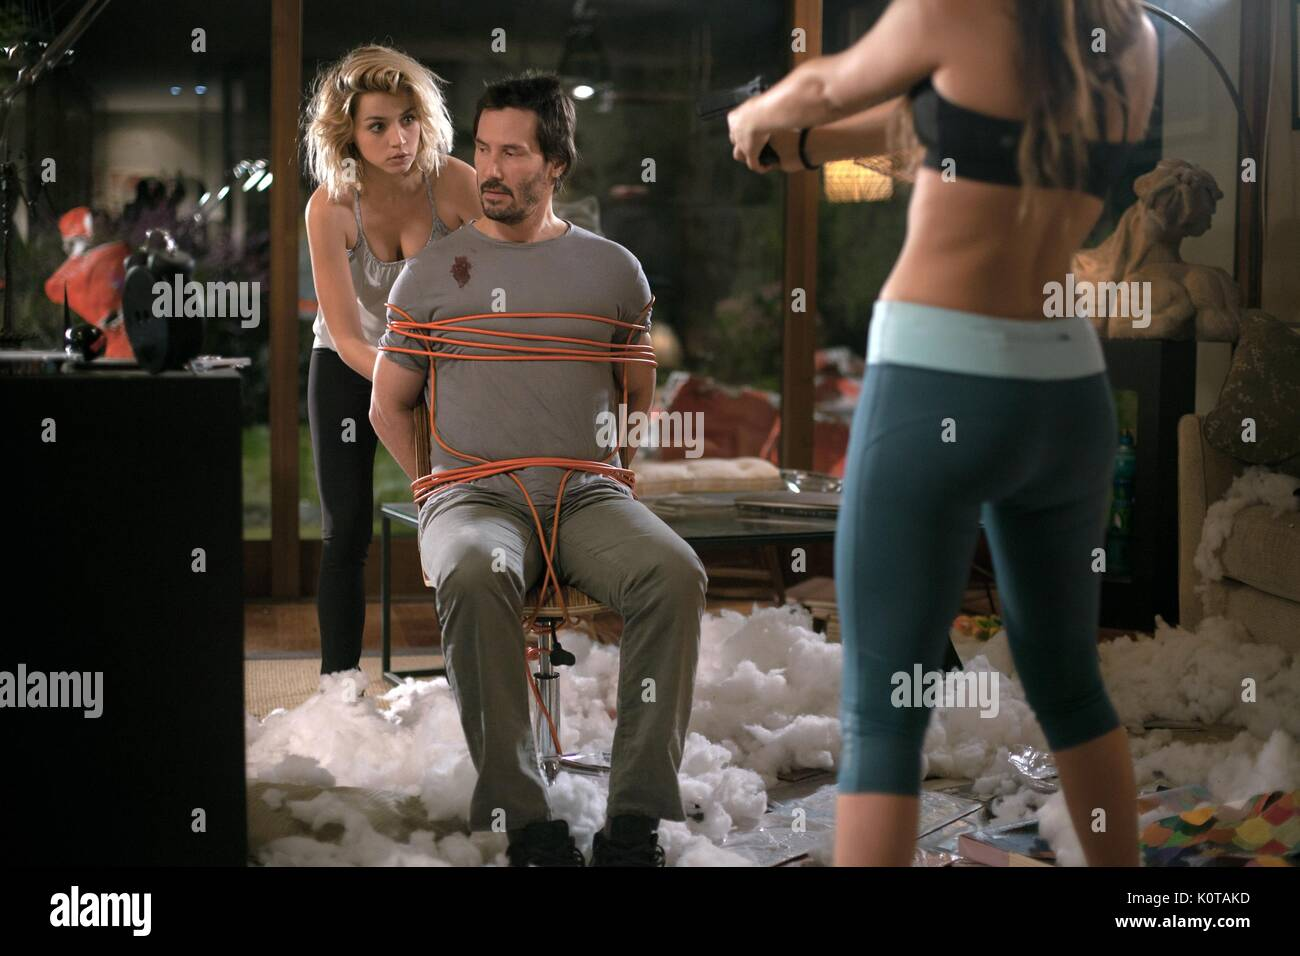 Ana De Armas Keanu Reeves Knock Knock 2015 Stock Photo Alamy